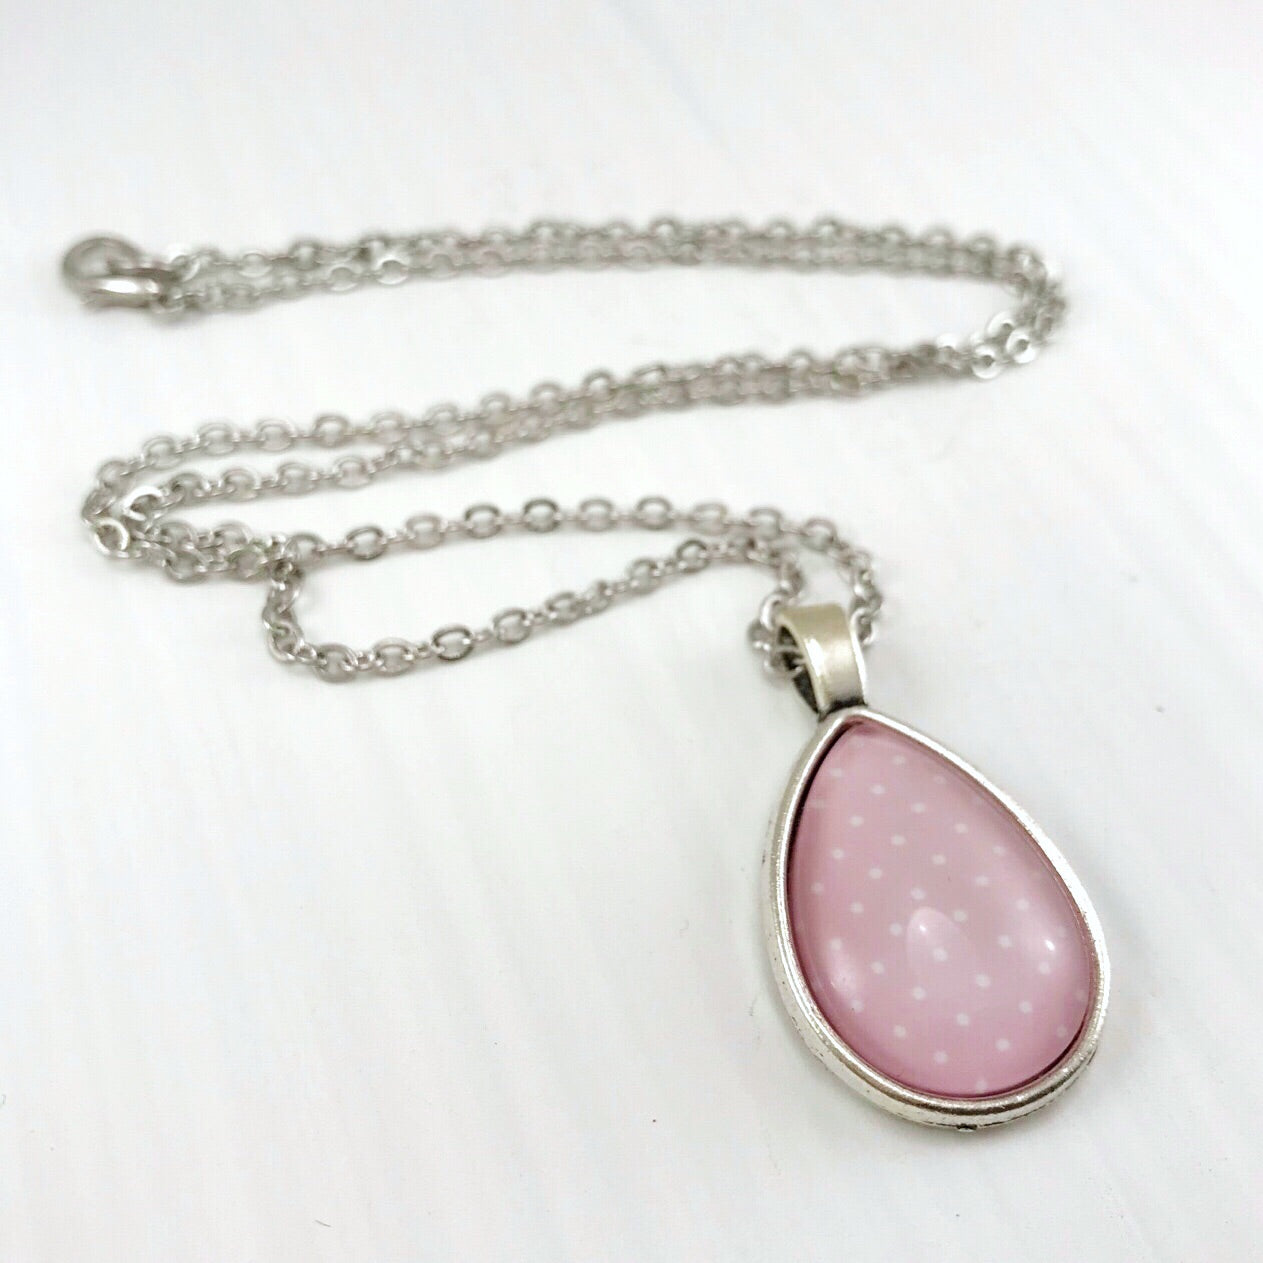 Pink and White Polka Dot Teardrop Necklace - Antique Silver